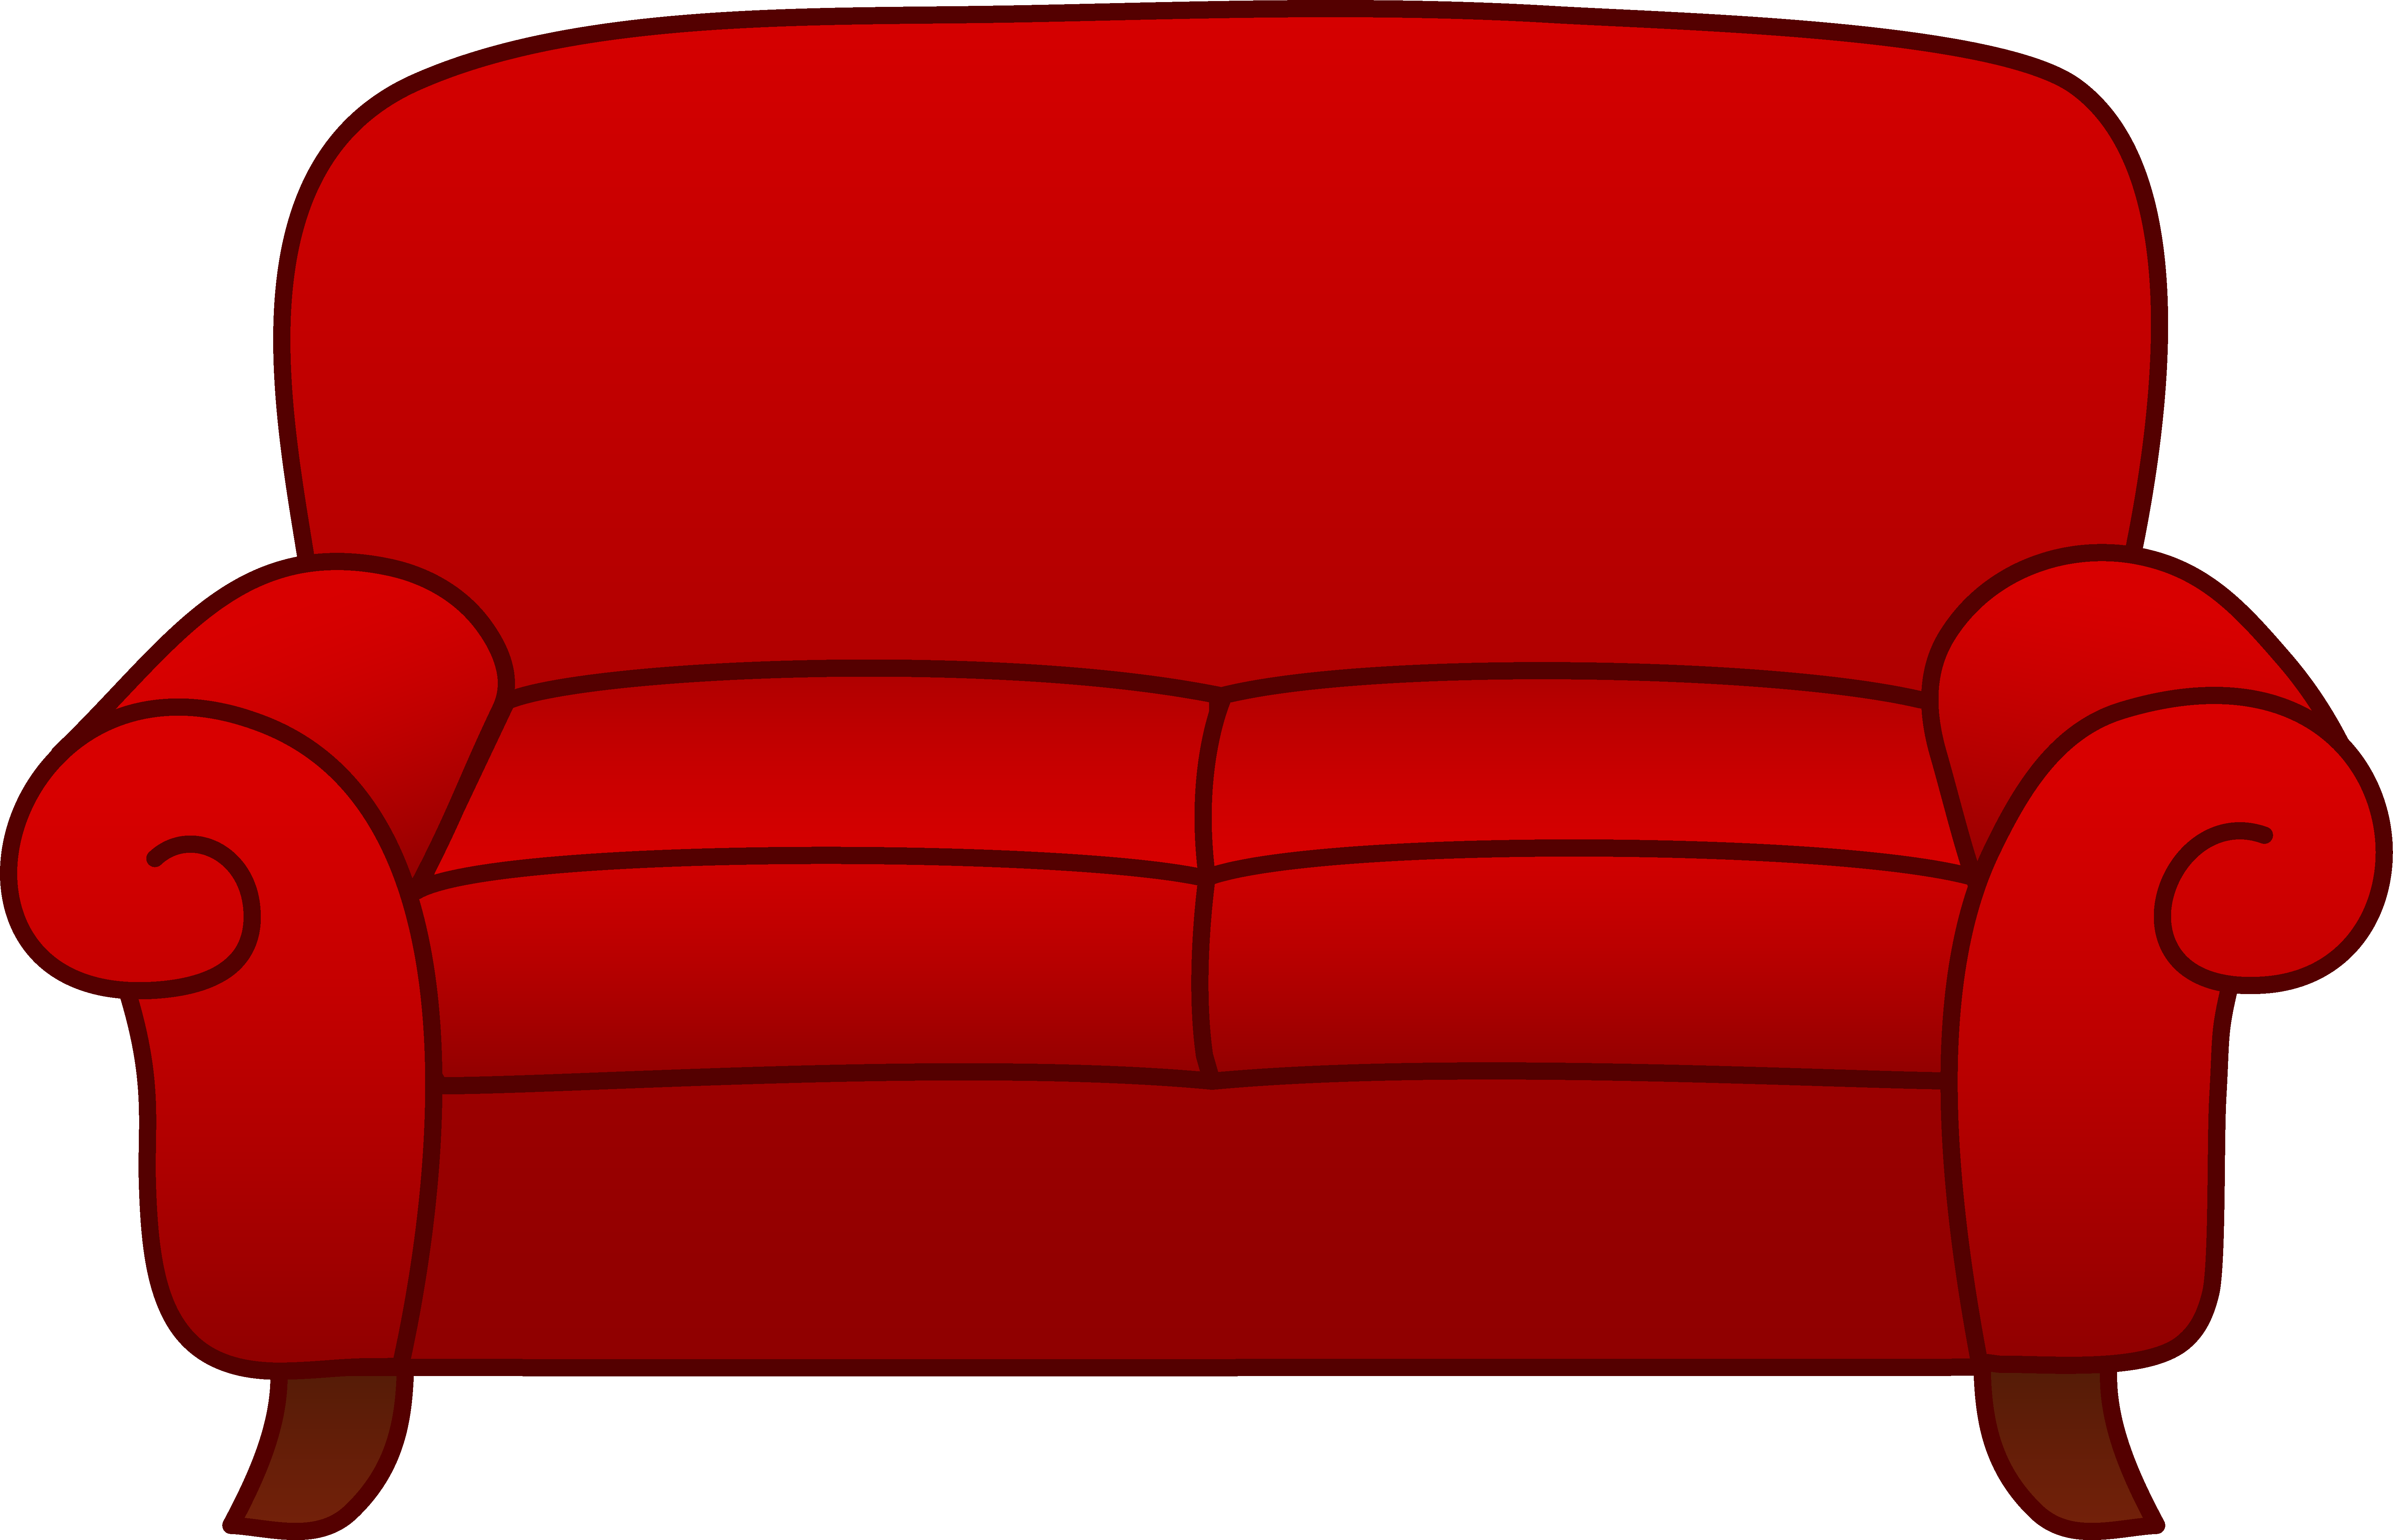 Christmas living room clipart clip art freeuse library Red Living Room Sofa - Free Clip Art clip art freeuse library